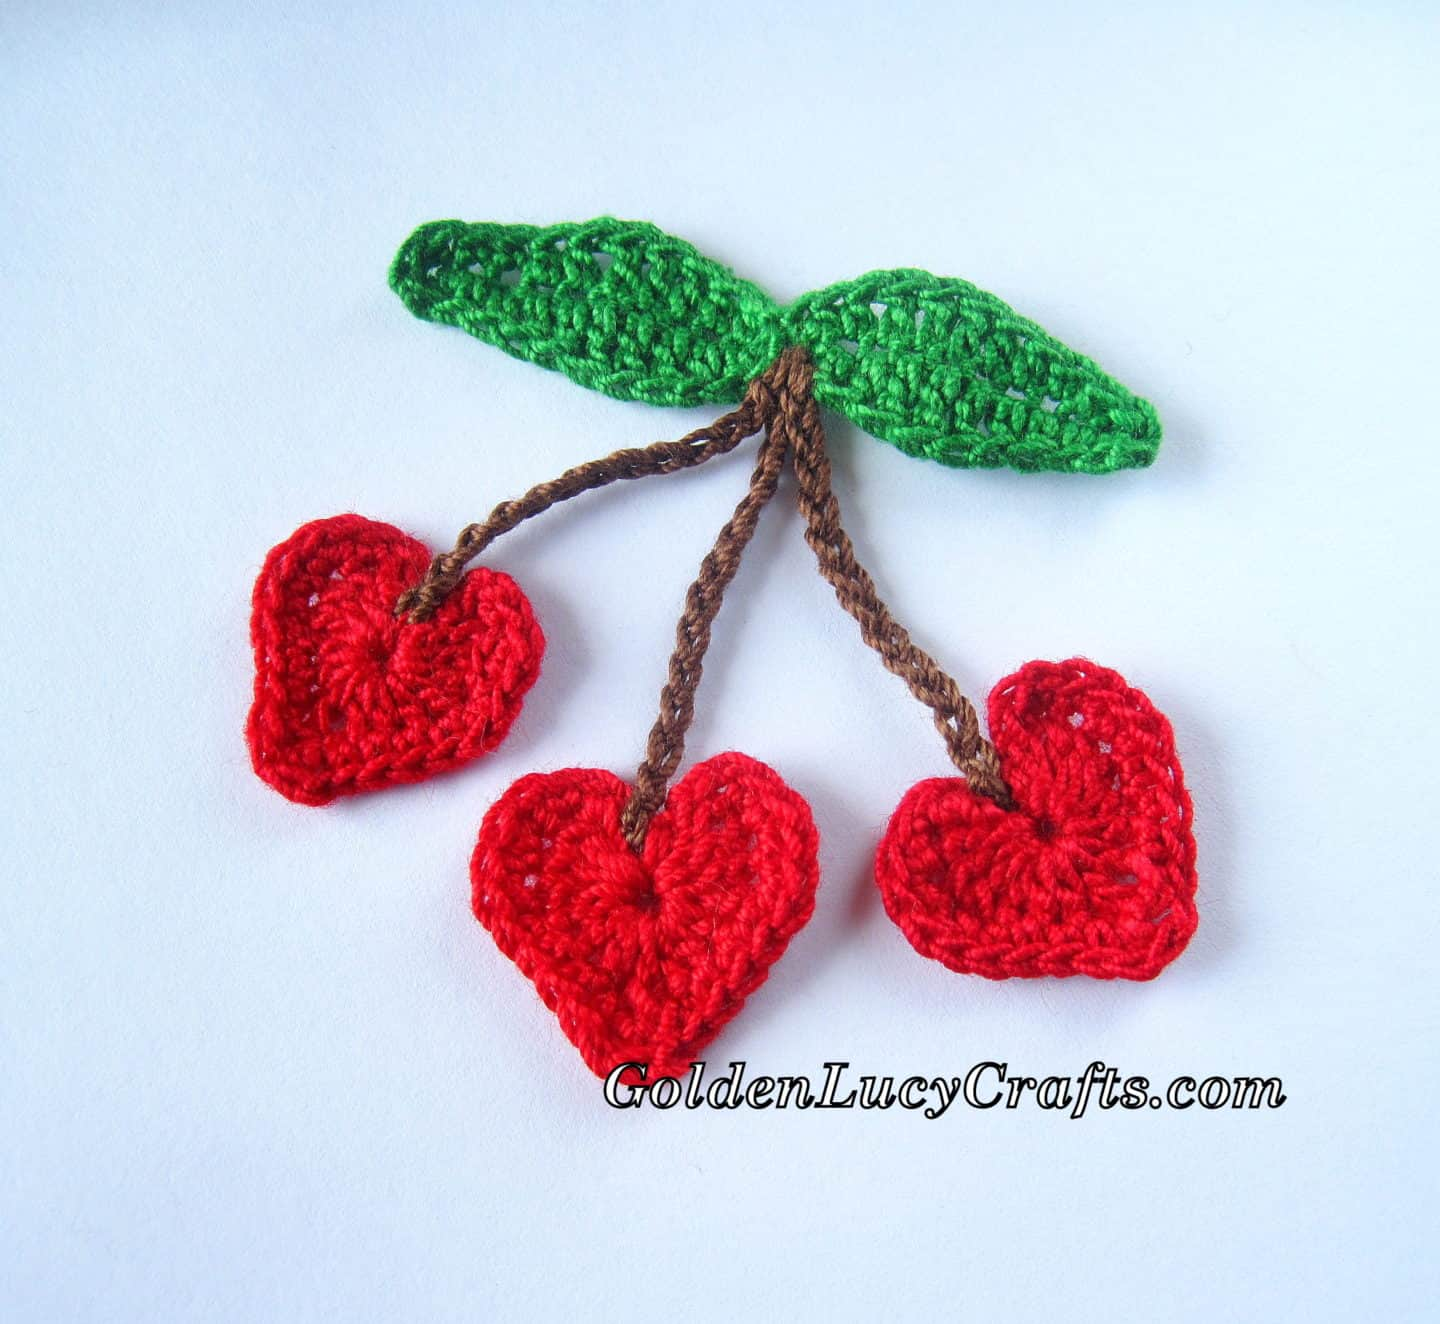 Crochet Cherry Hearts Appliqué